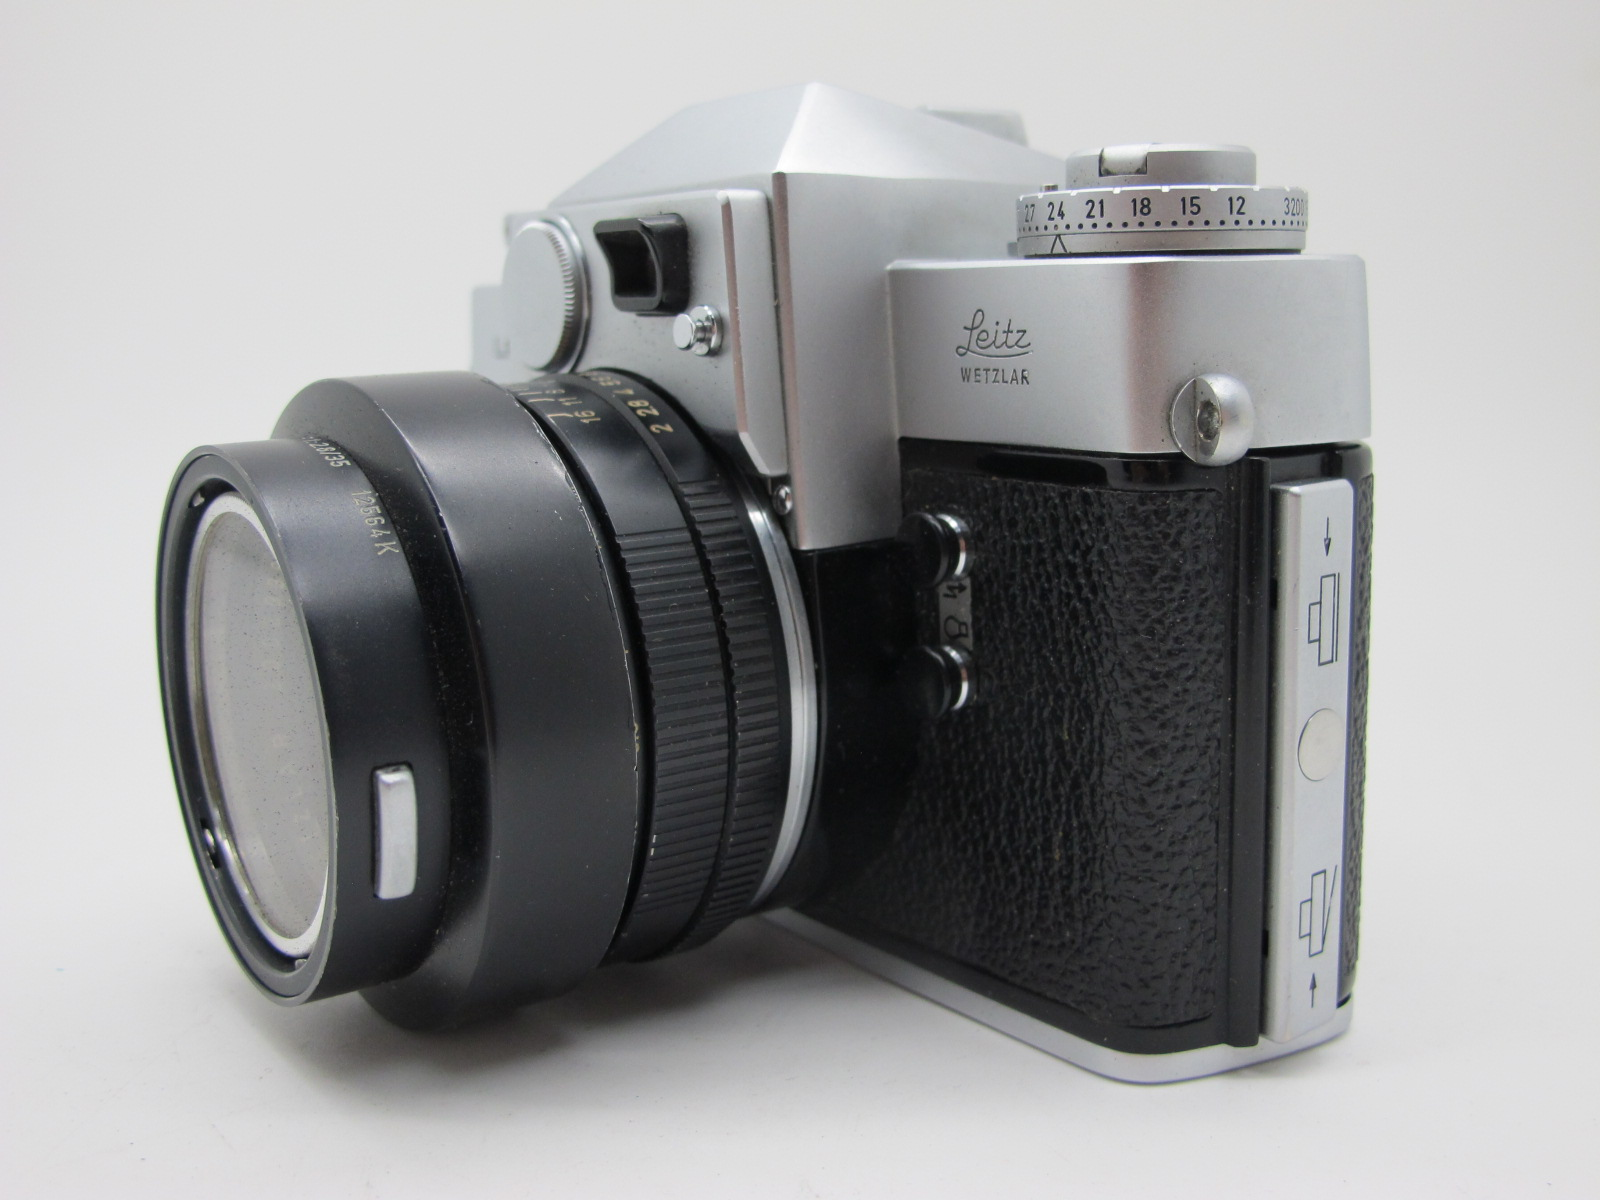 Leicaflex Manual Camera, with Leitz Wetzlar Summicron - R 1:2/50 lens in a black case. - Image 6 of 8